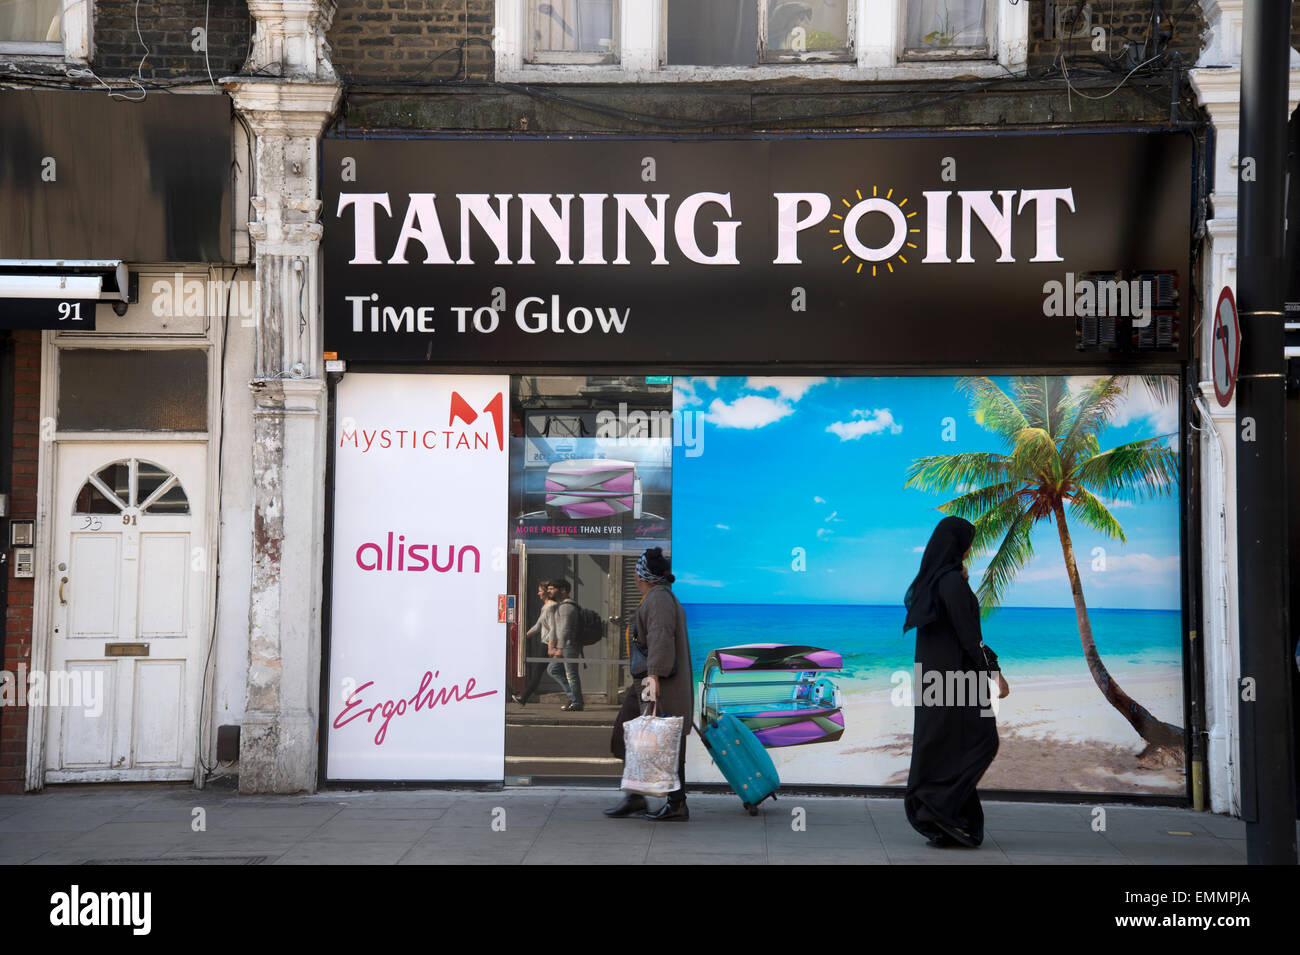 Tanning studio with palm tree beach photo mural and people walking past on the pavement including woman in Islamic - Stock Image